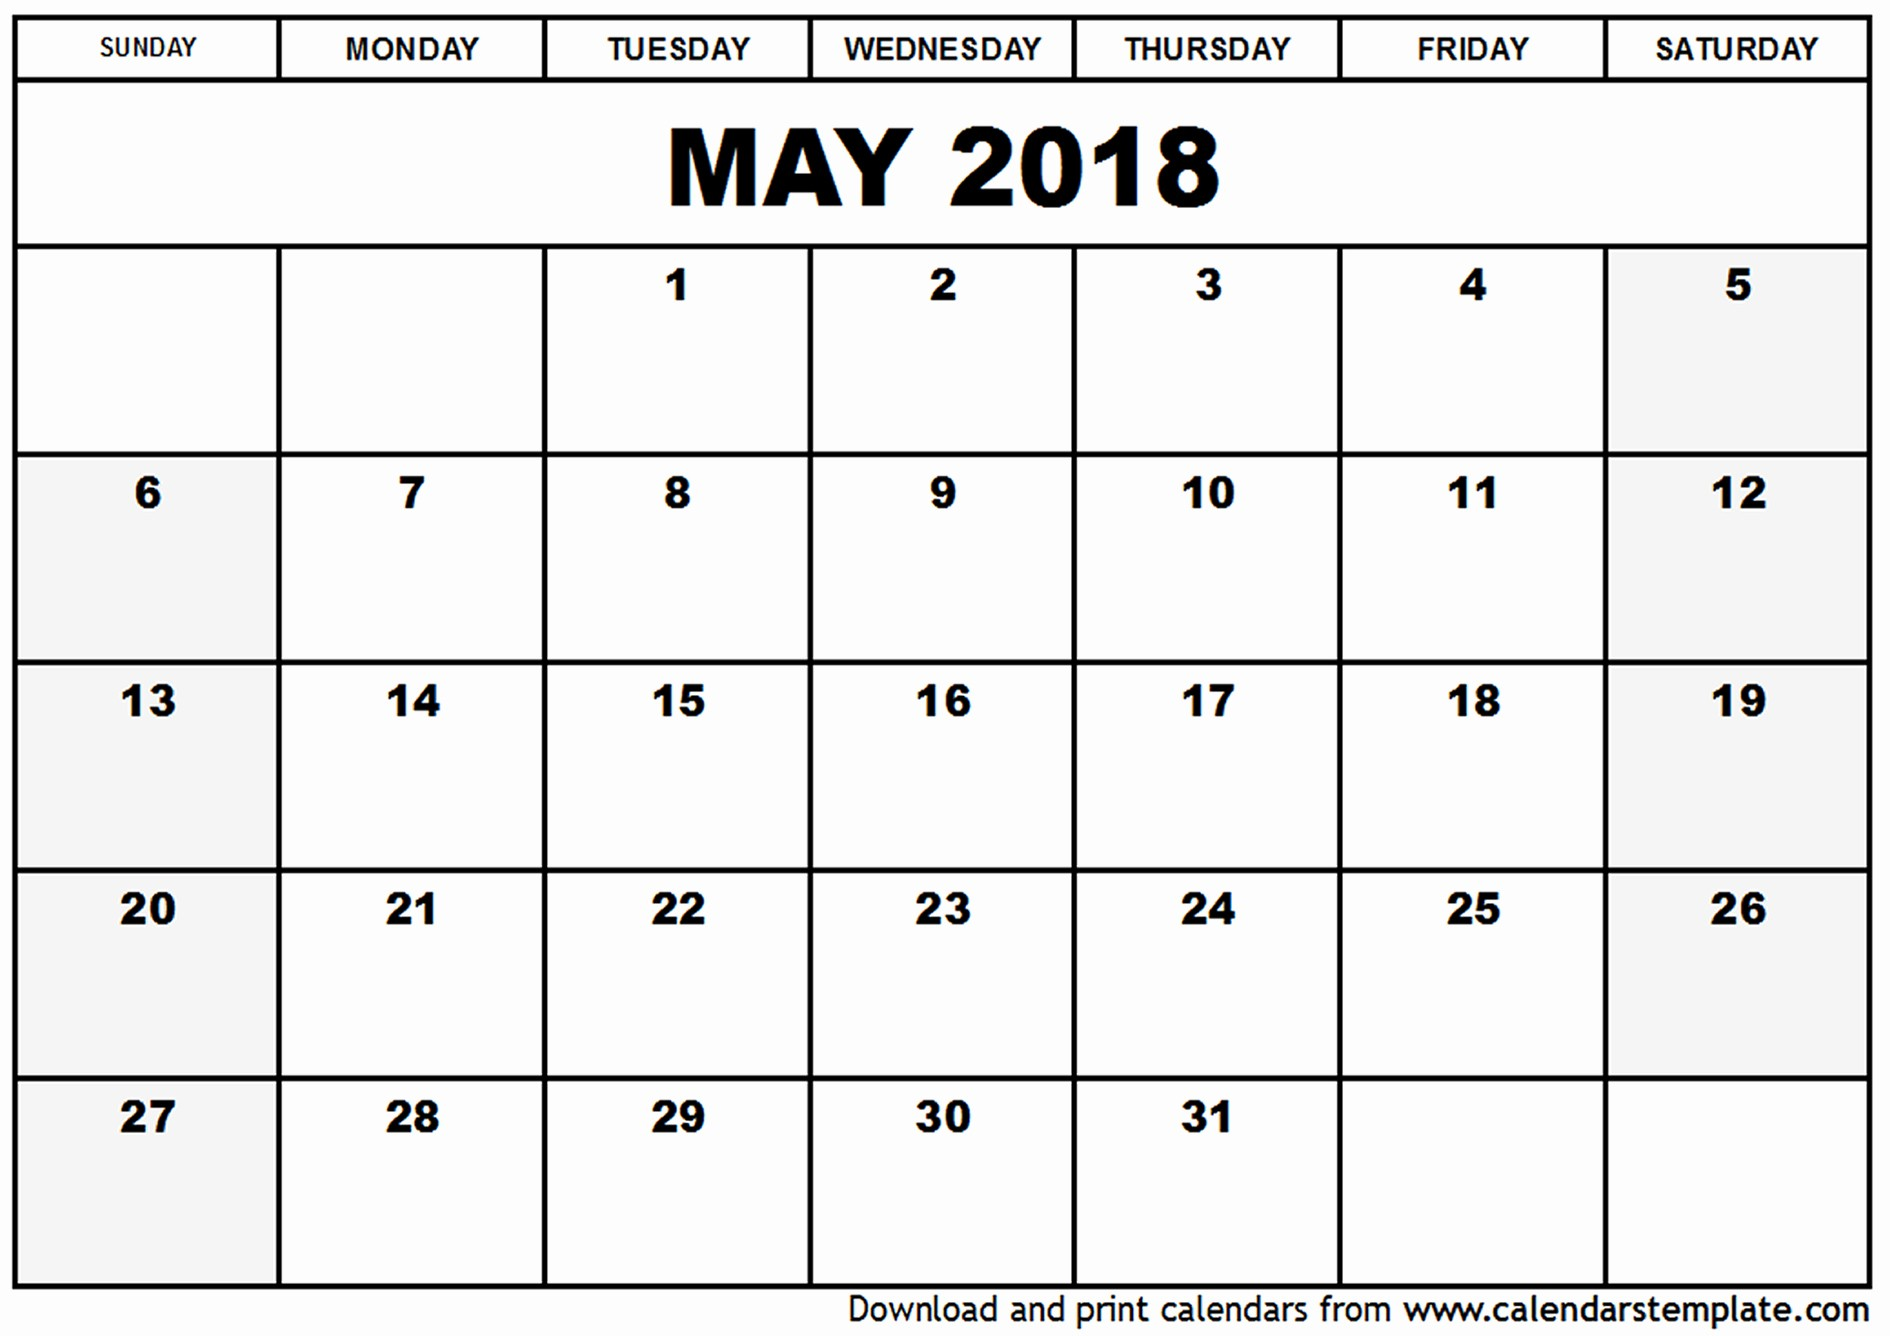 Free Printable 2018 Calendar Templates New May 2018 Calendar Template